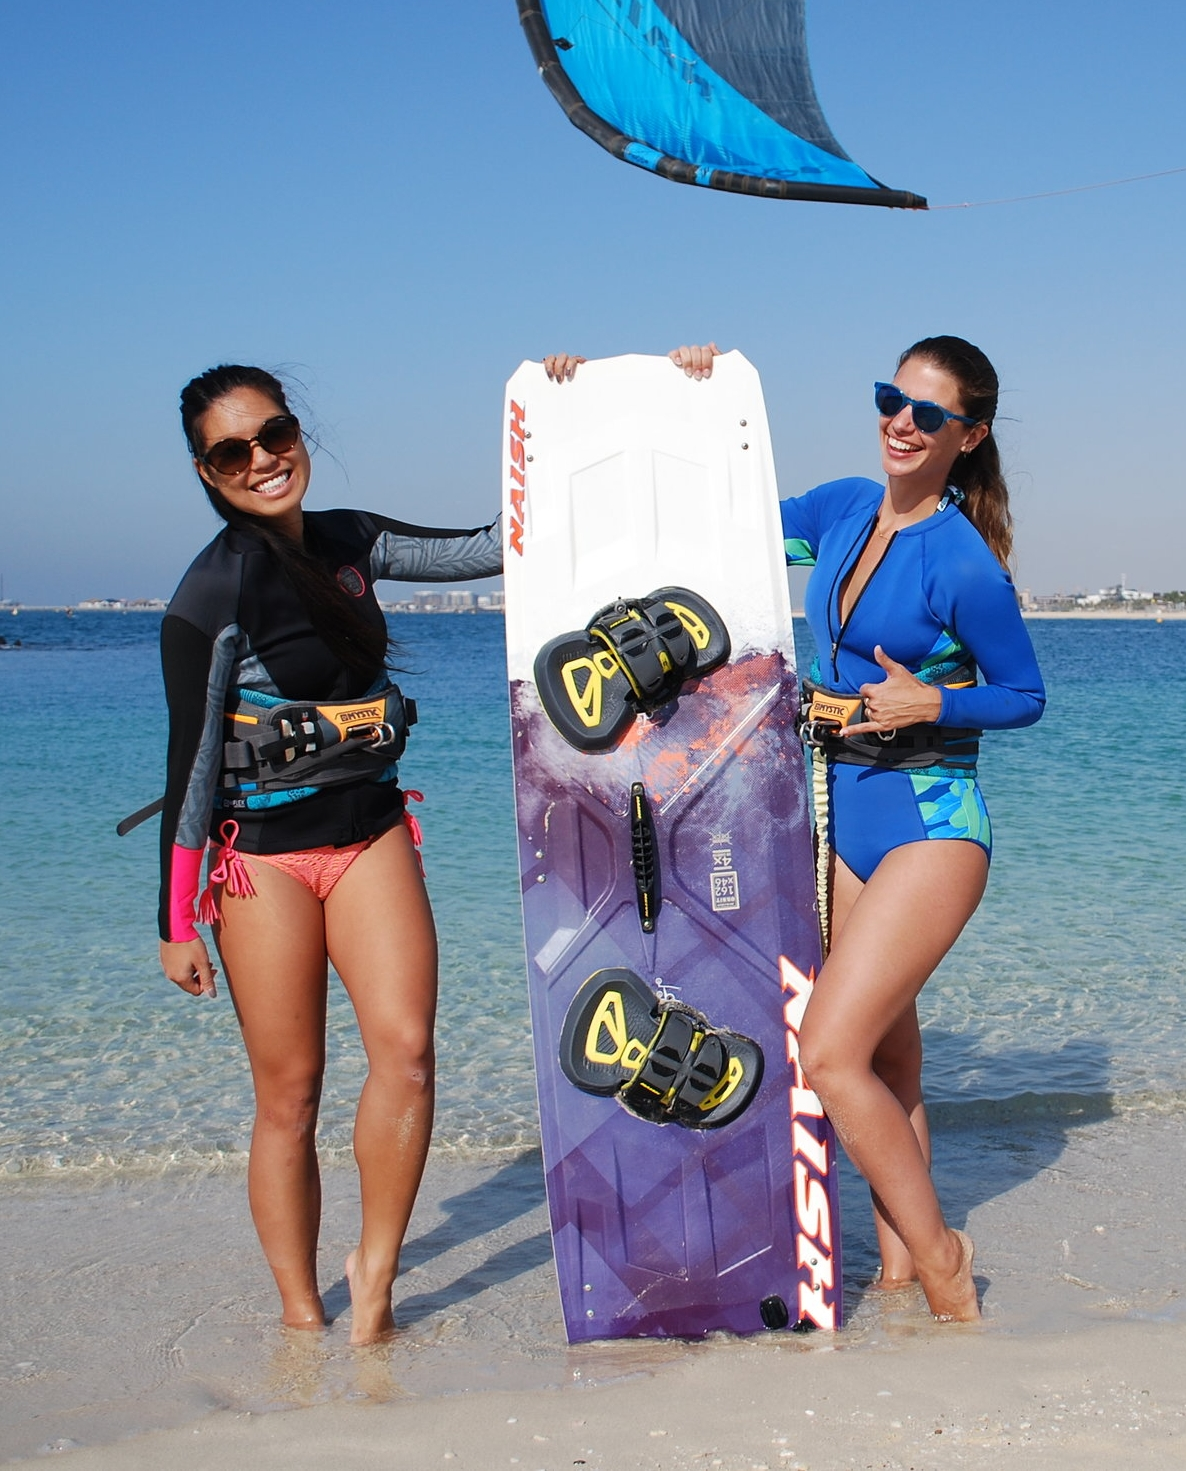 Girls learning how to kitesurf.JPG